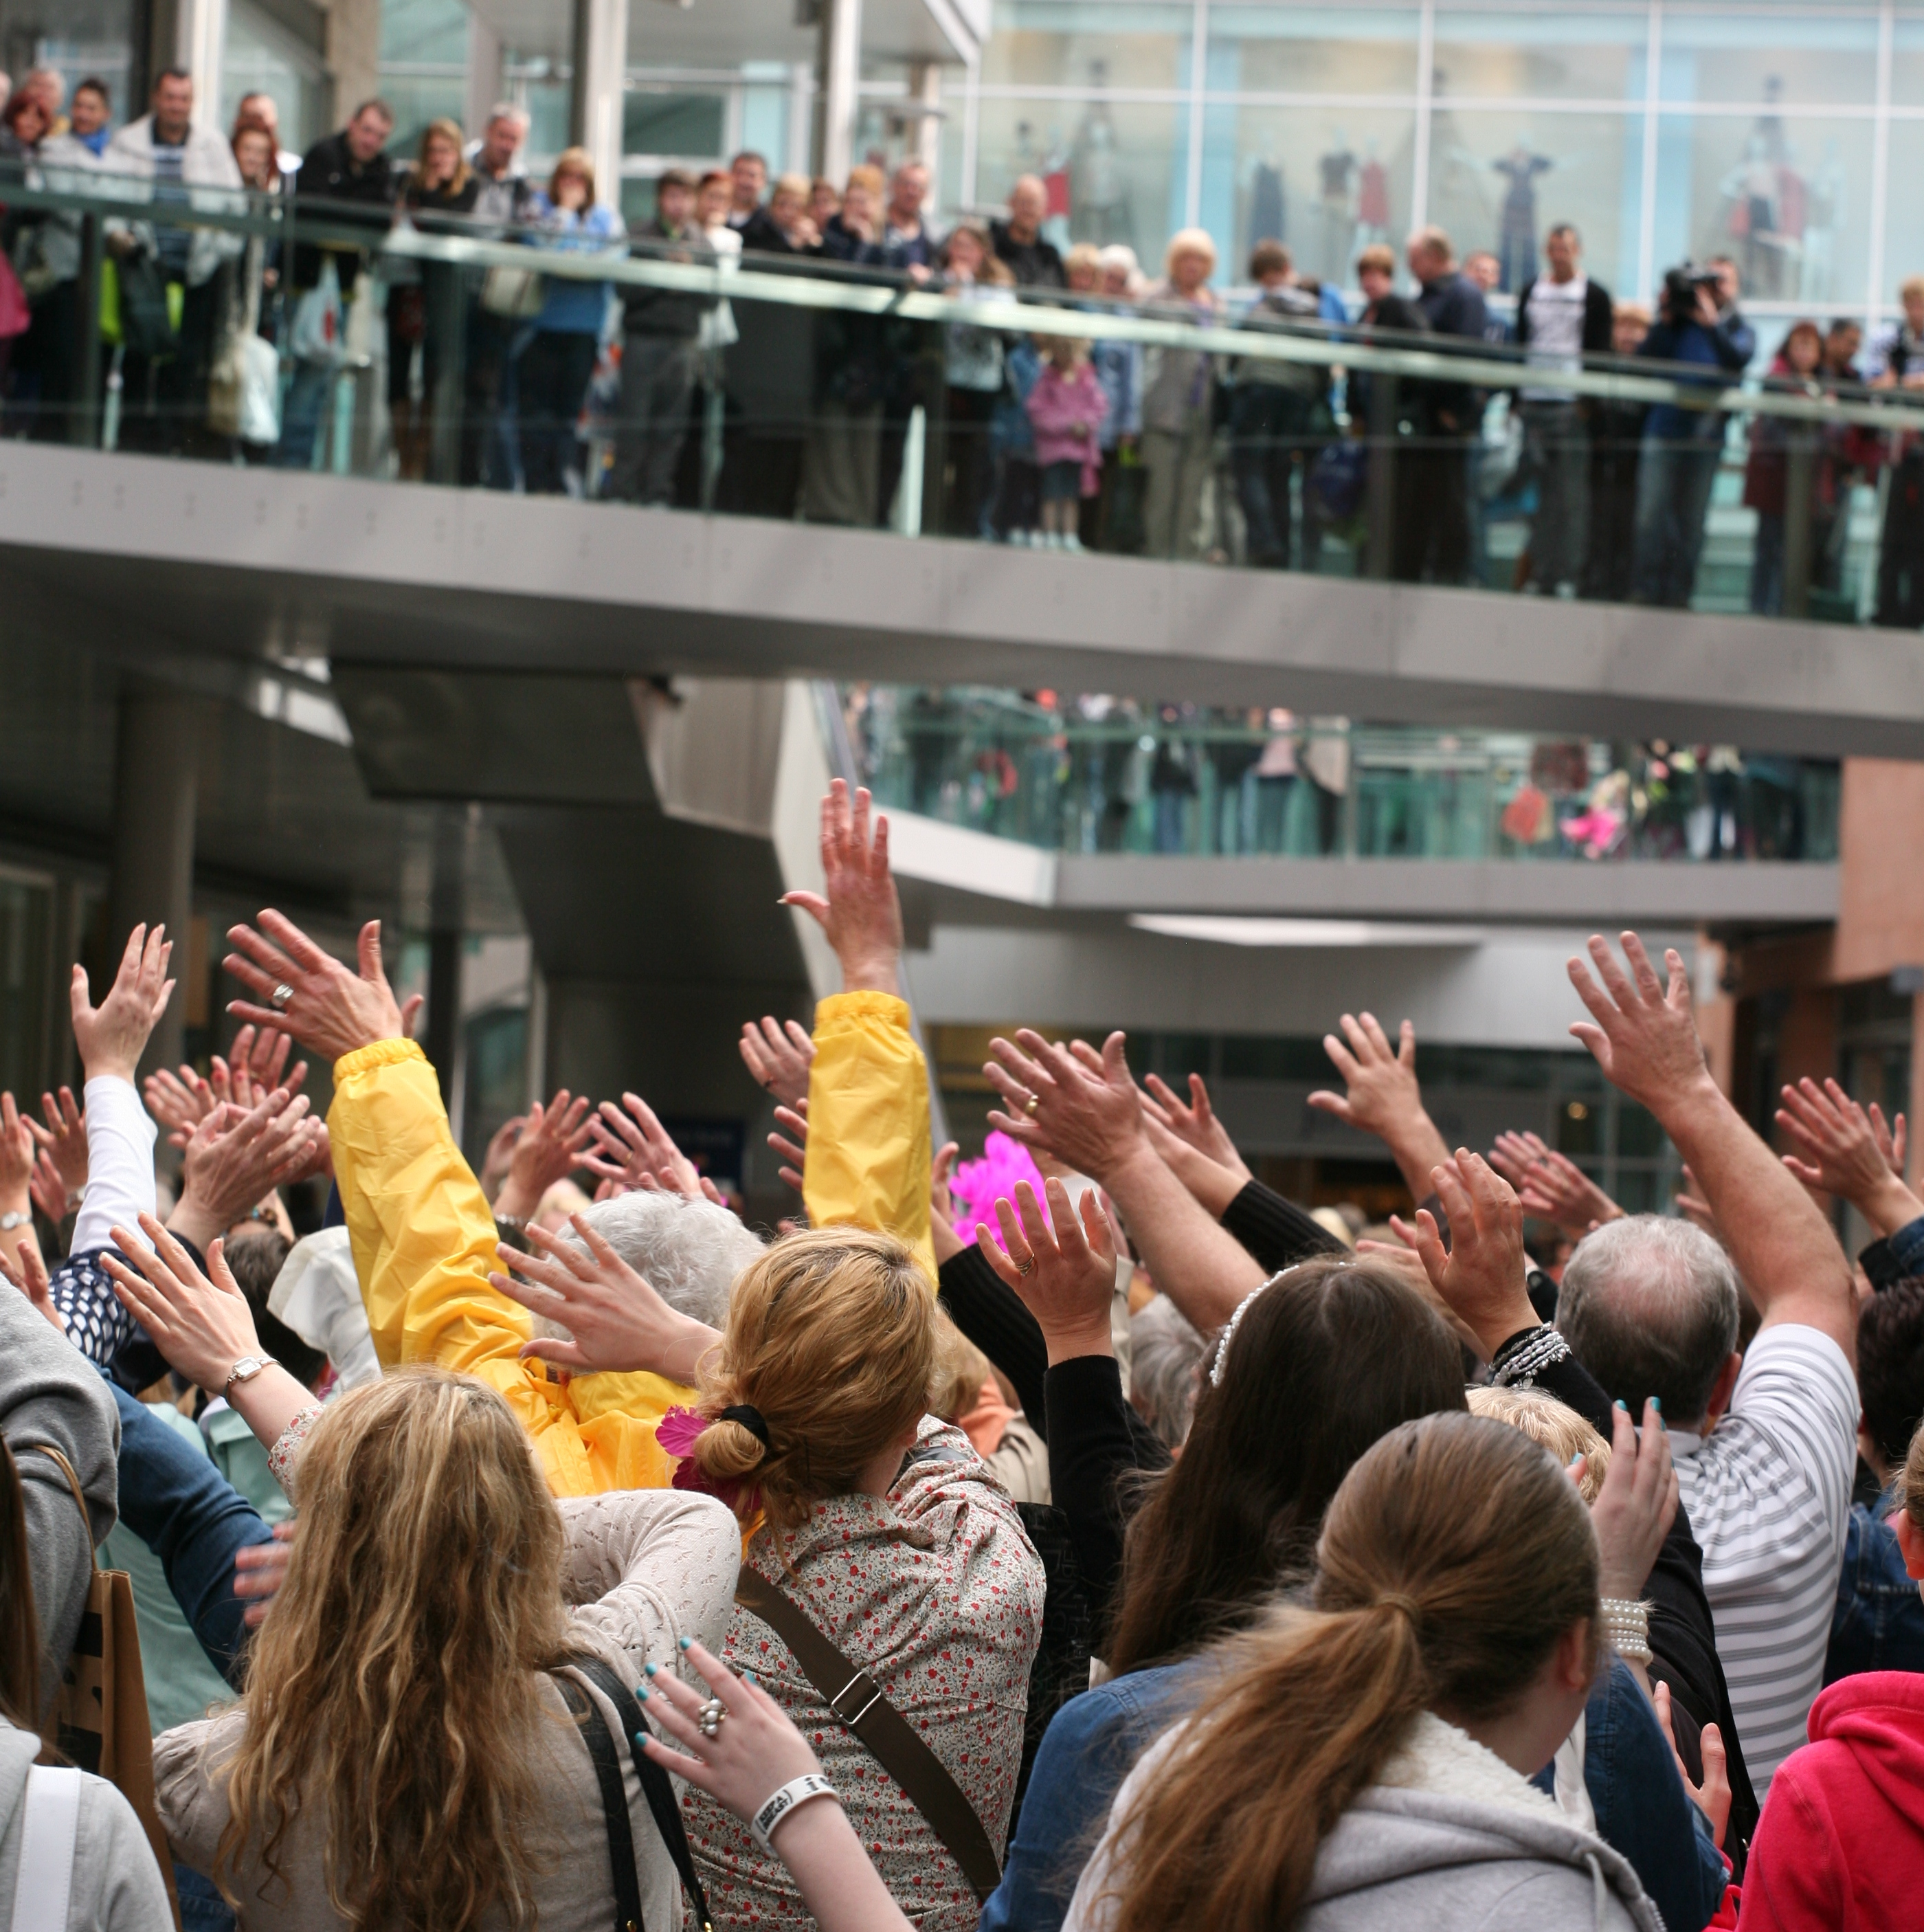 'Over 55's Flashmob' at at Liverpool One shopping centre, organized by Home Instead Liverpool Central and North